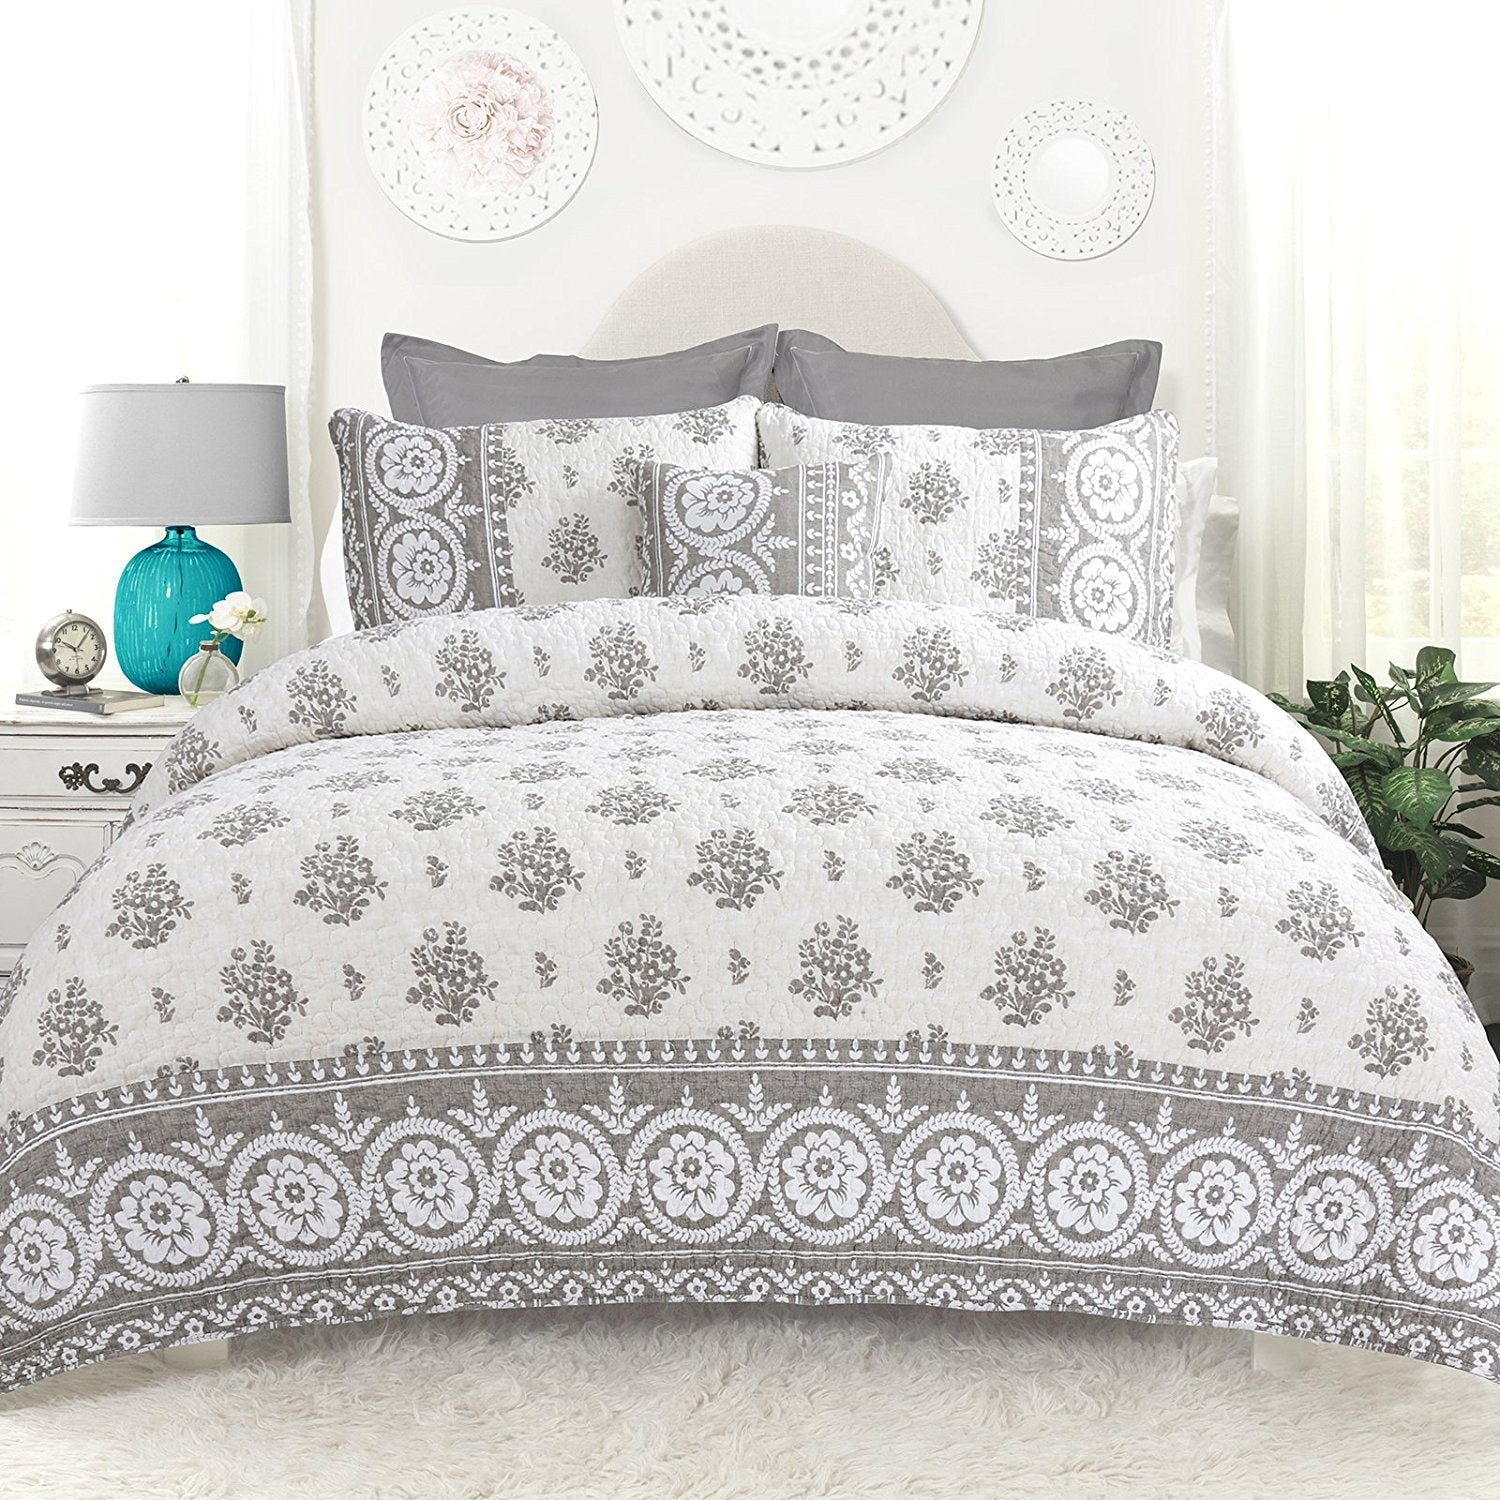 buyer duvet comforters and company bedding store bath bed the gray home duvets covers quilt select